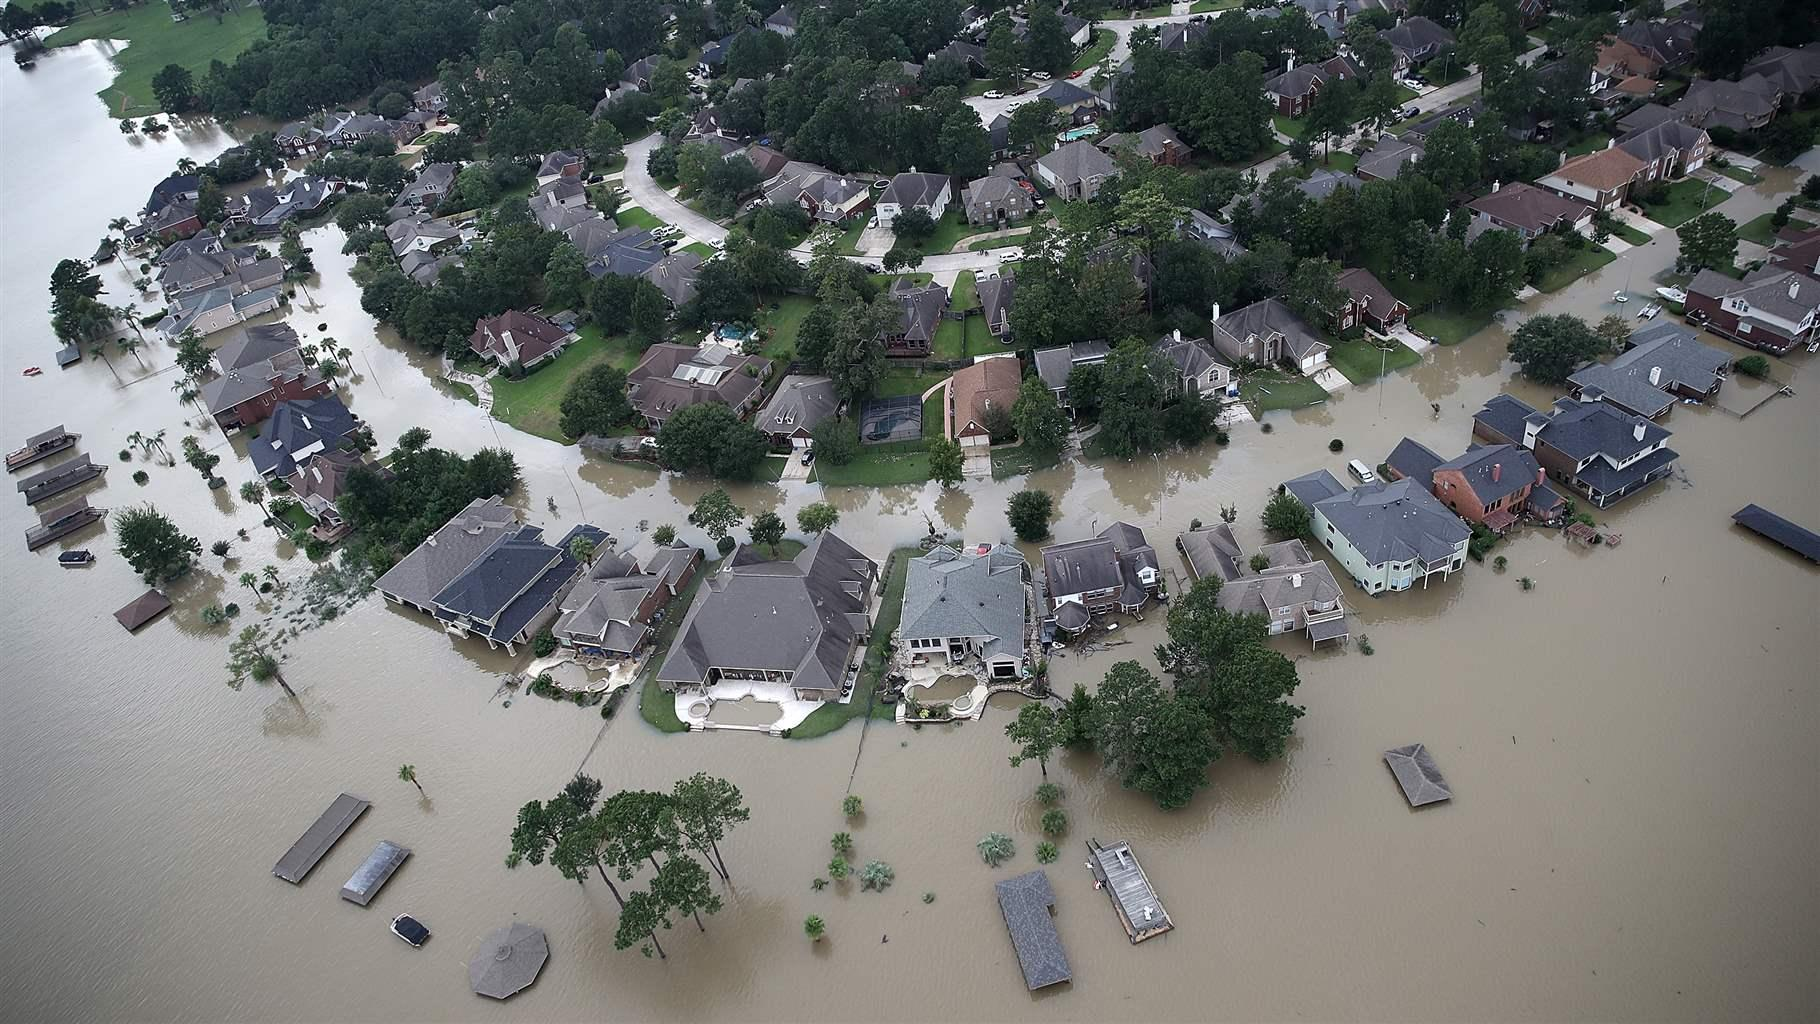 A Year After Hurricane Harvey, Congress Still Hasn't Improved U.S. Flood Policy